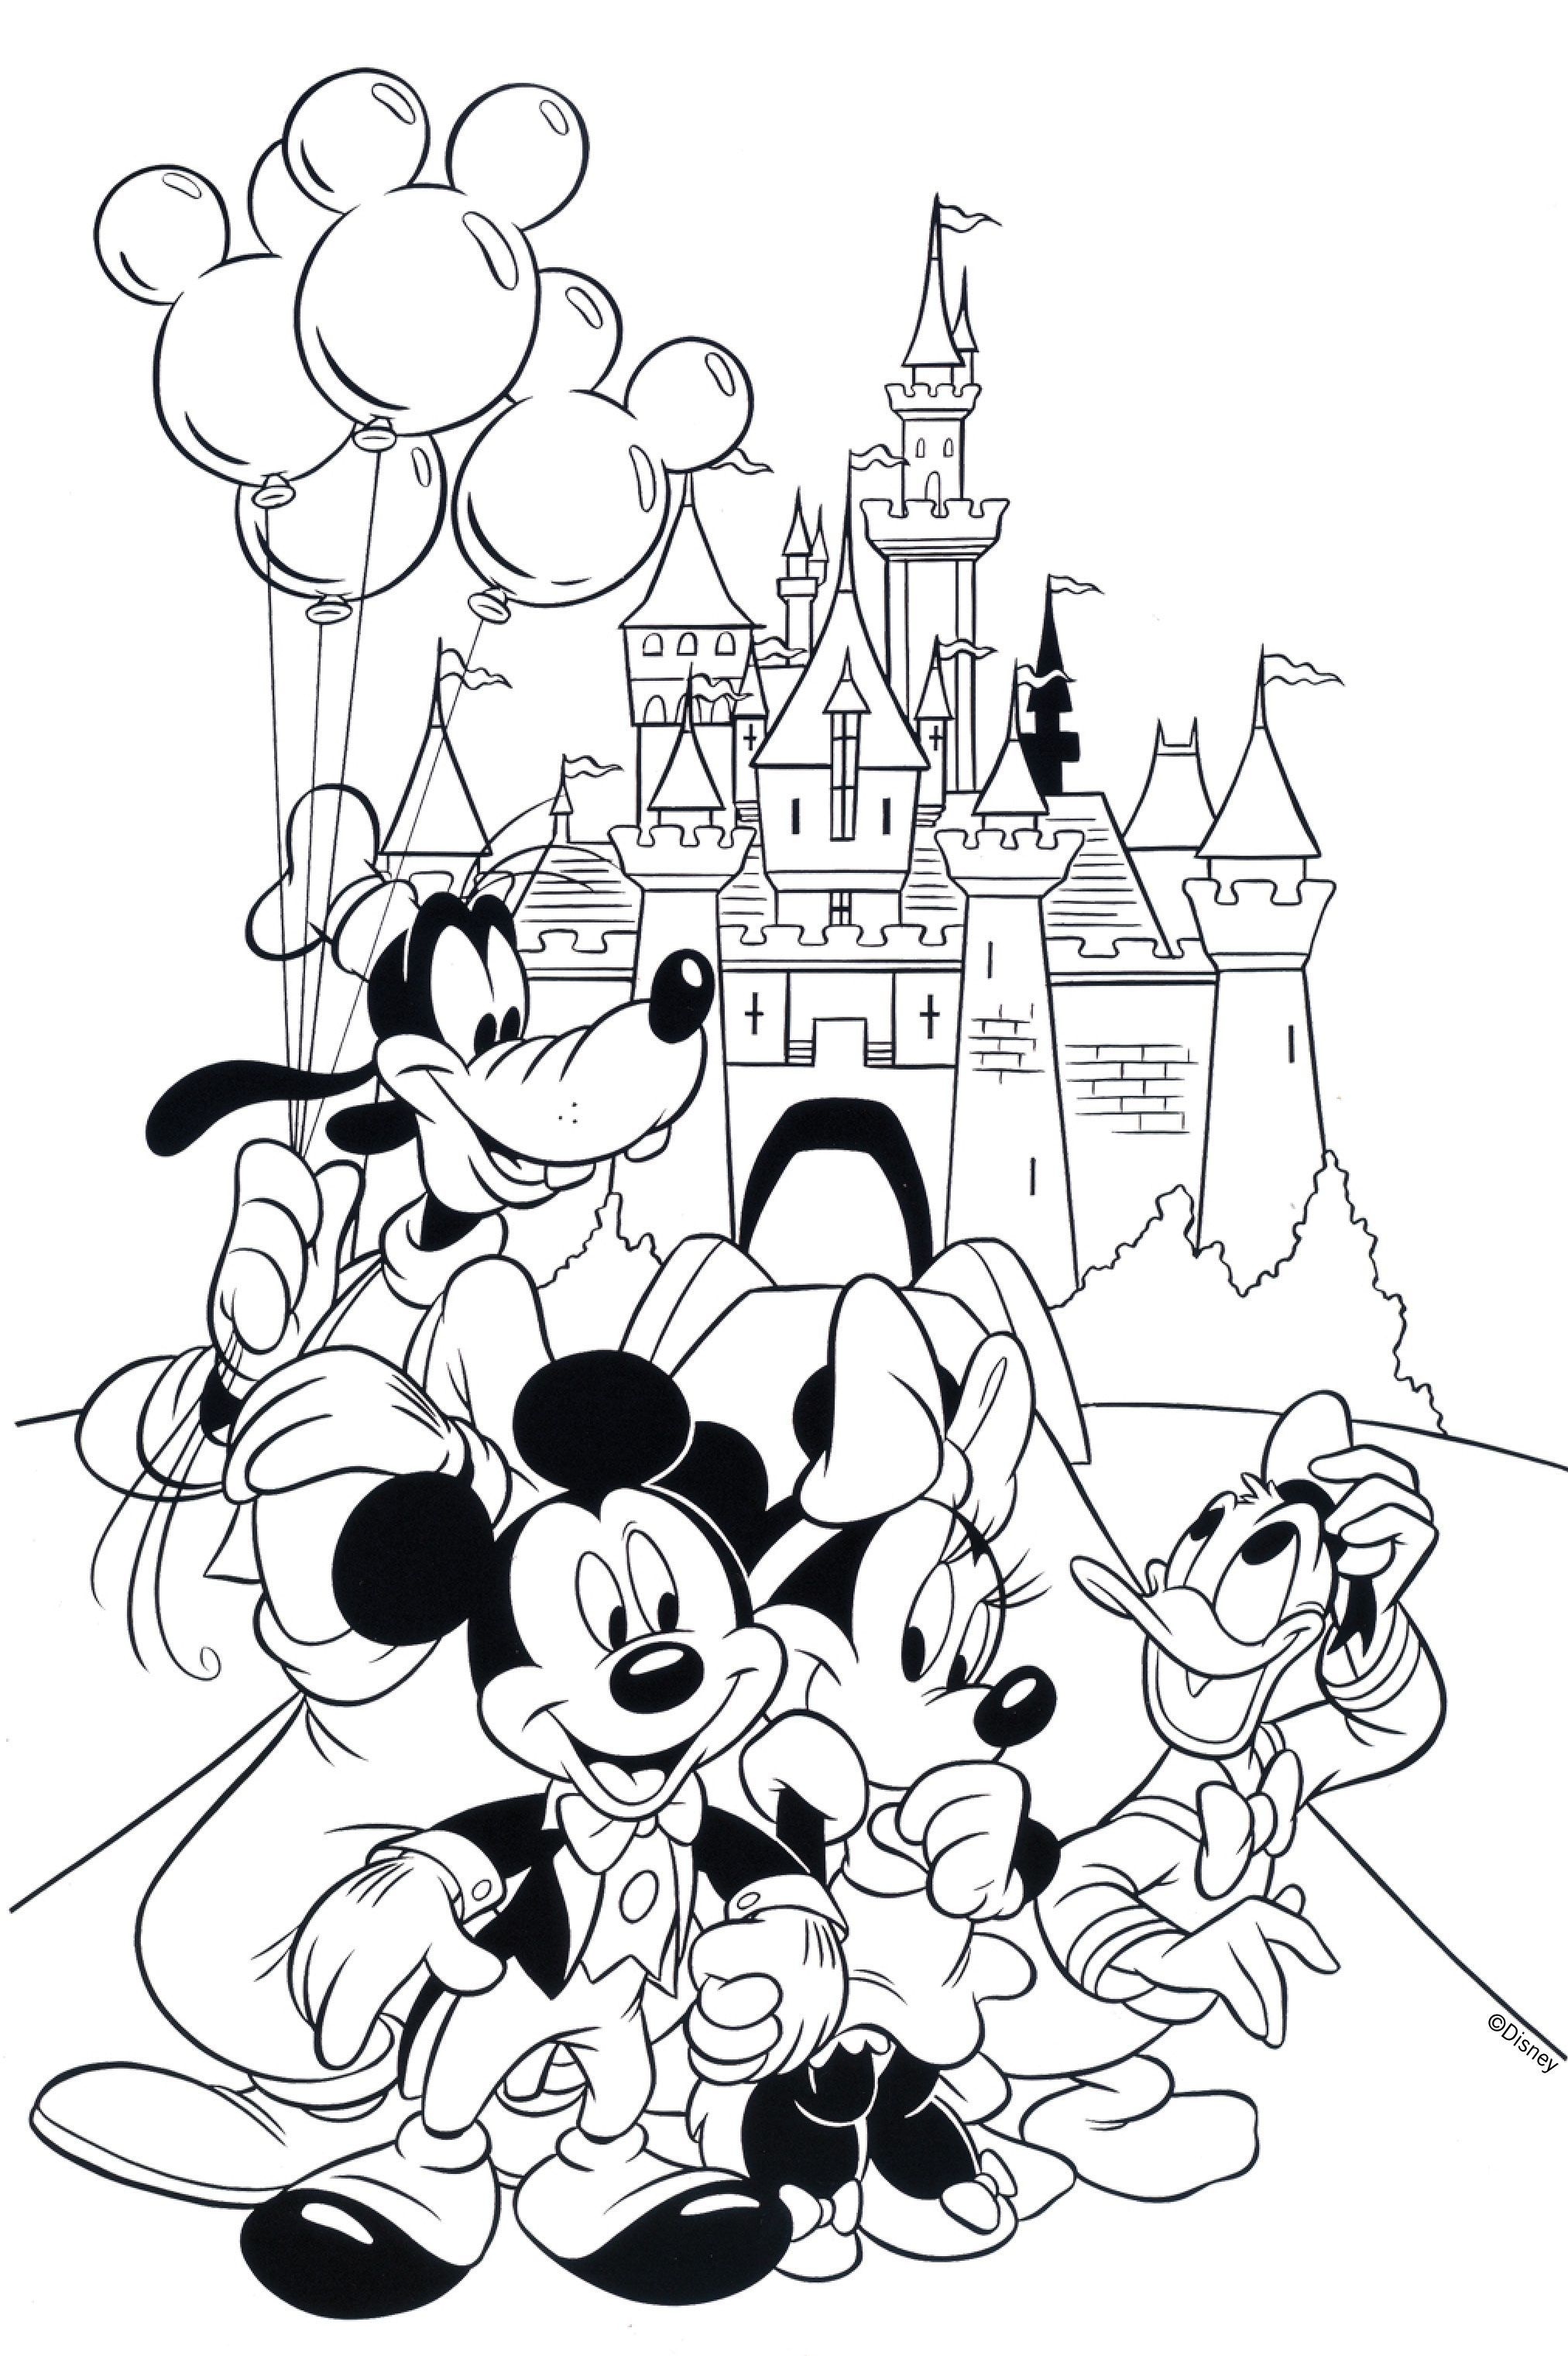 Disney Coloring Page Coloring Pages Allow Kids To Accompany Their Favorite Characters On Cartoon Coloring Pages Disney Coloring Pages Disney Coloring Sheets